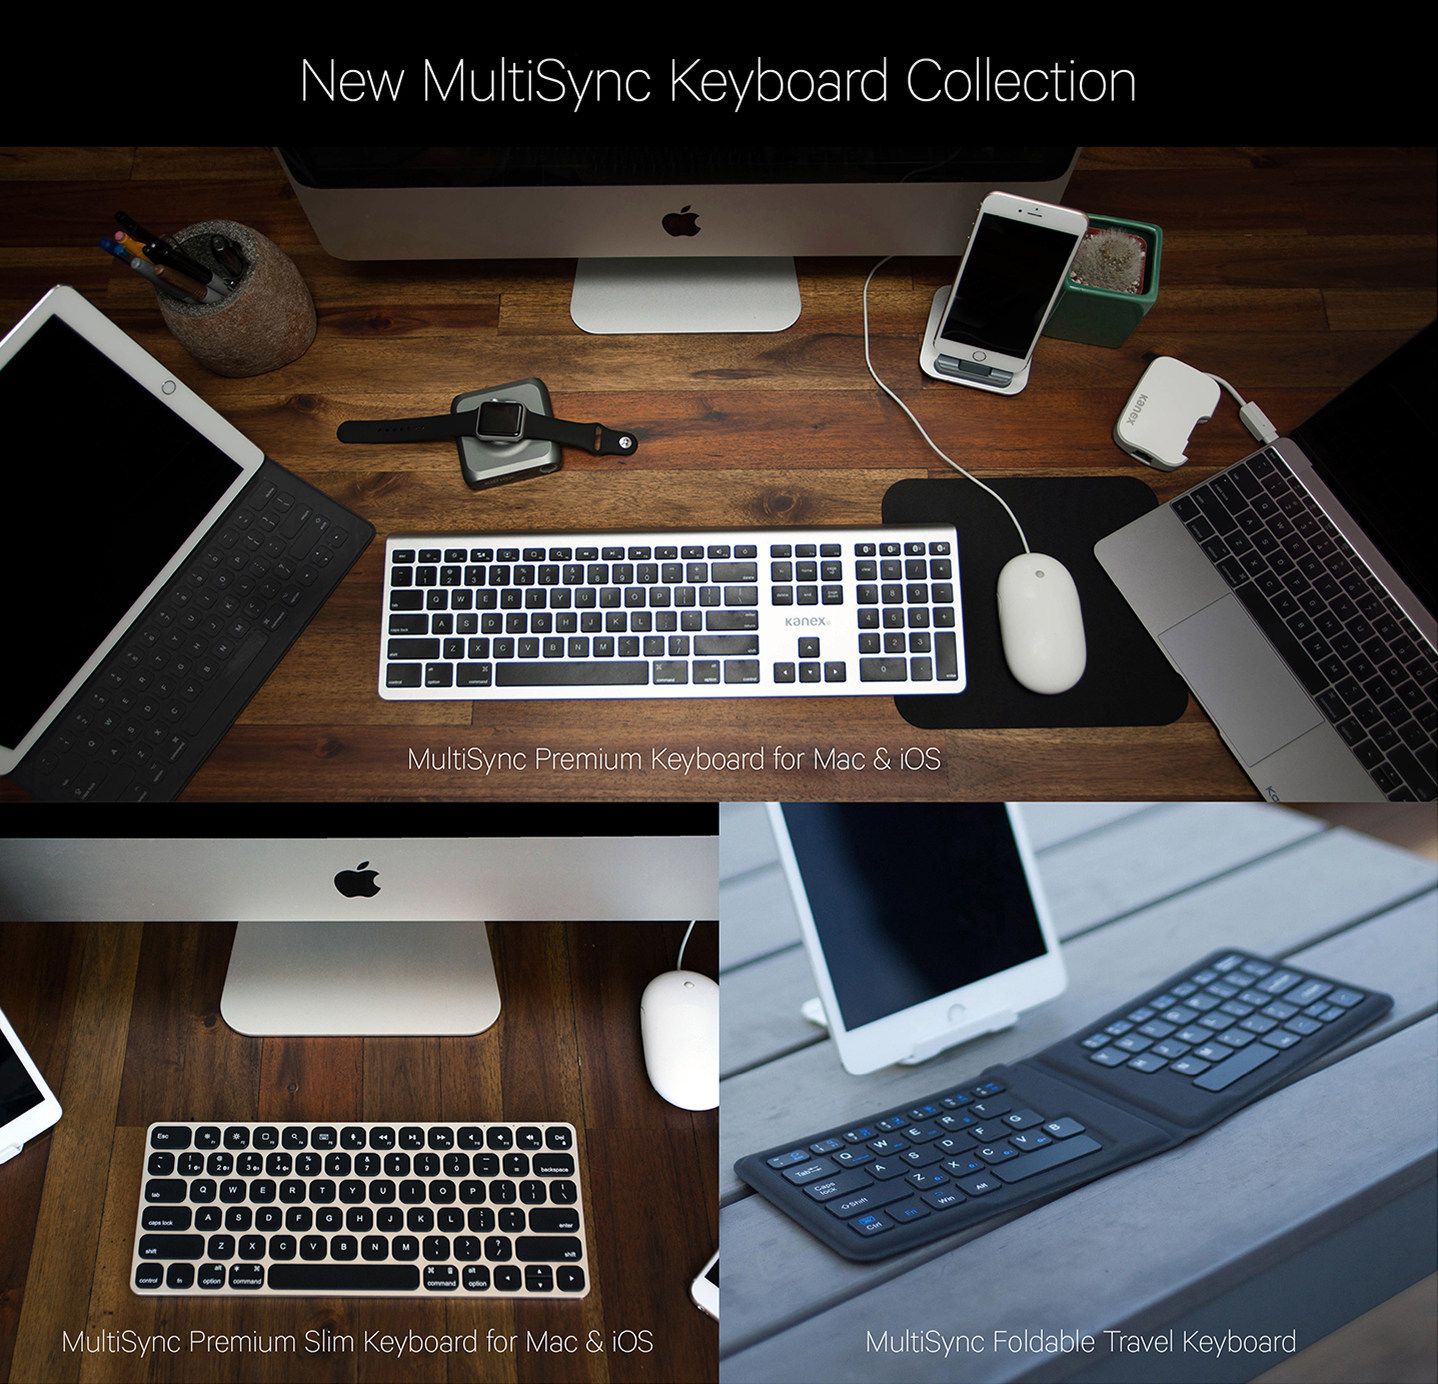 c78a1871dfc Kanex to Expand Line of MultiSync Wireless Bluetooth Keyboards at ...